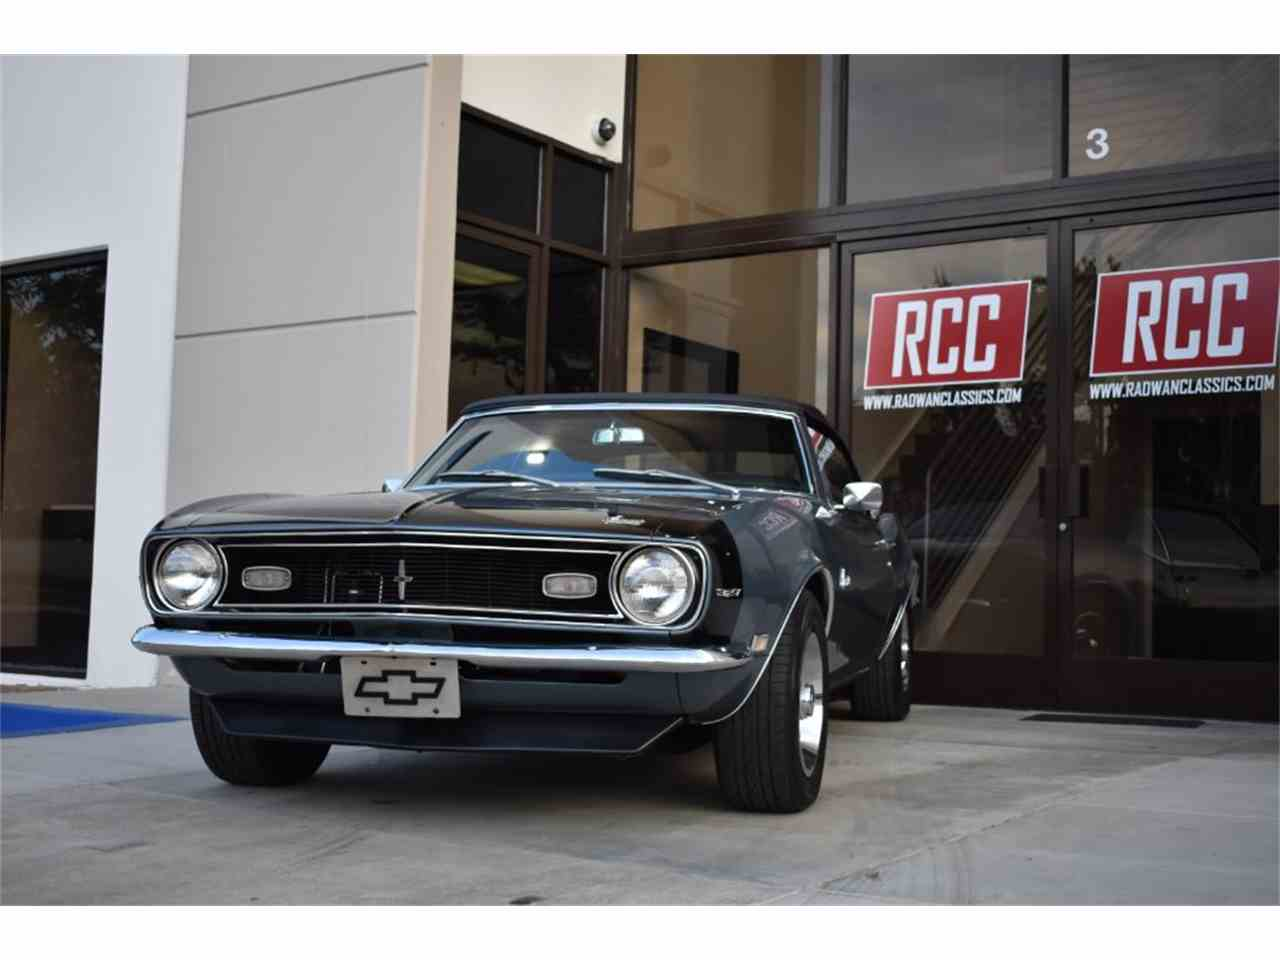 Large Picture of '68 Chevrolet Camaro located in Irvine California - $47,900.00 Offered by Radwan Classic Cars - MO9U